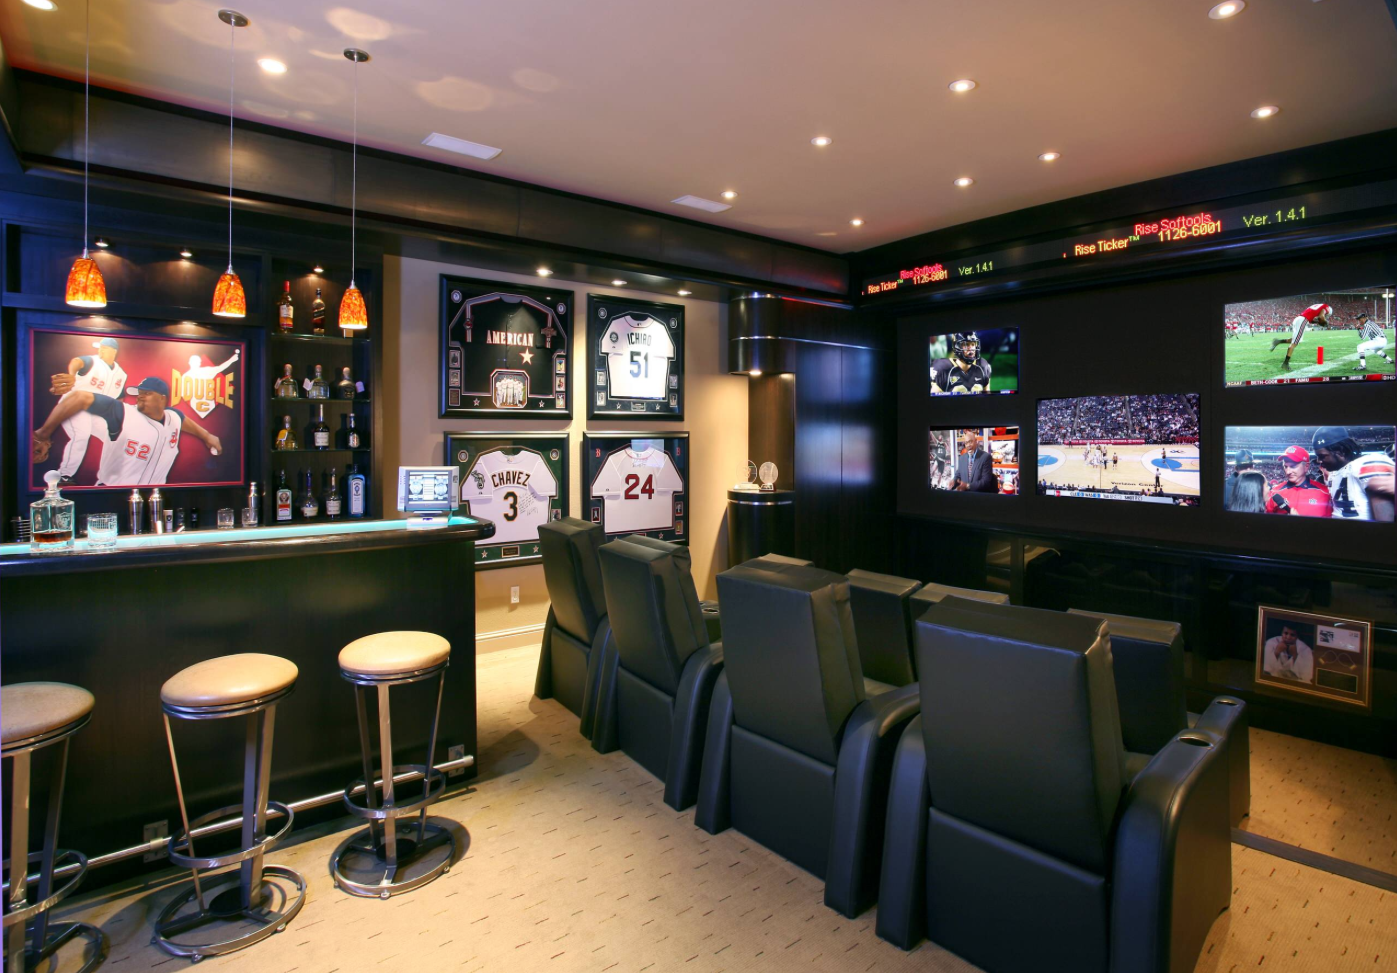 50 Best Man Cave Ideas and Designs for 2016 Caves Bar and Design